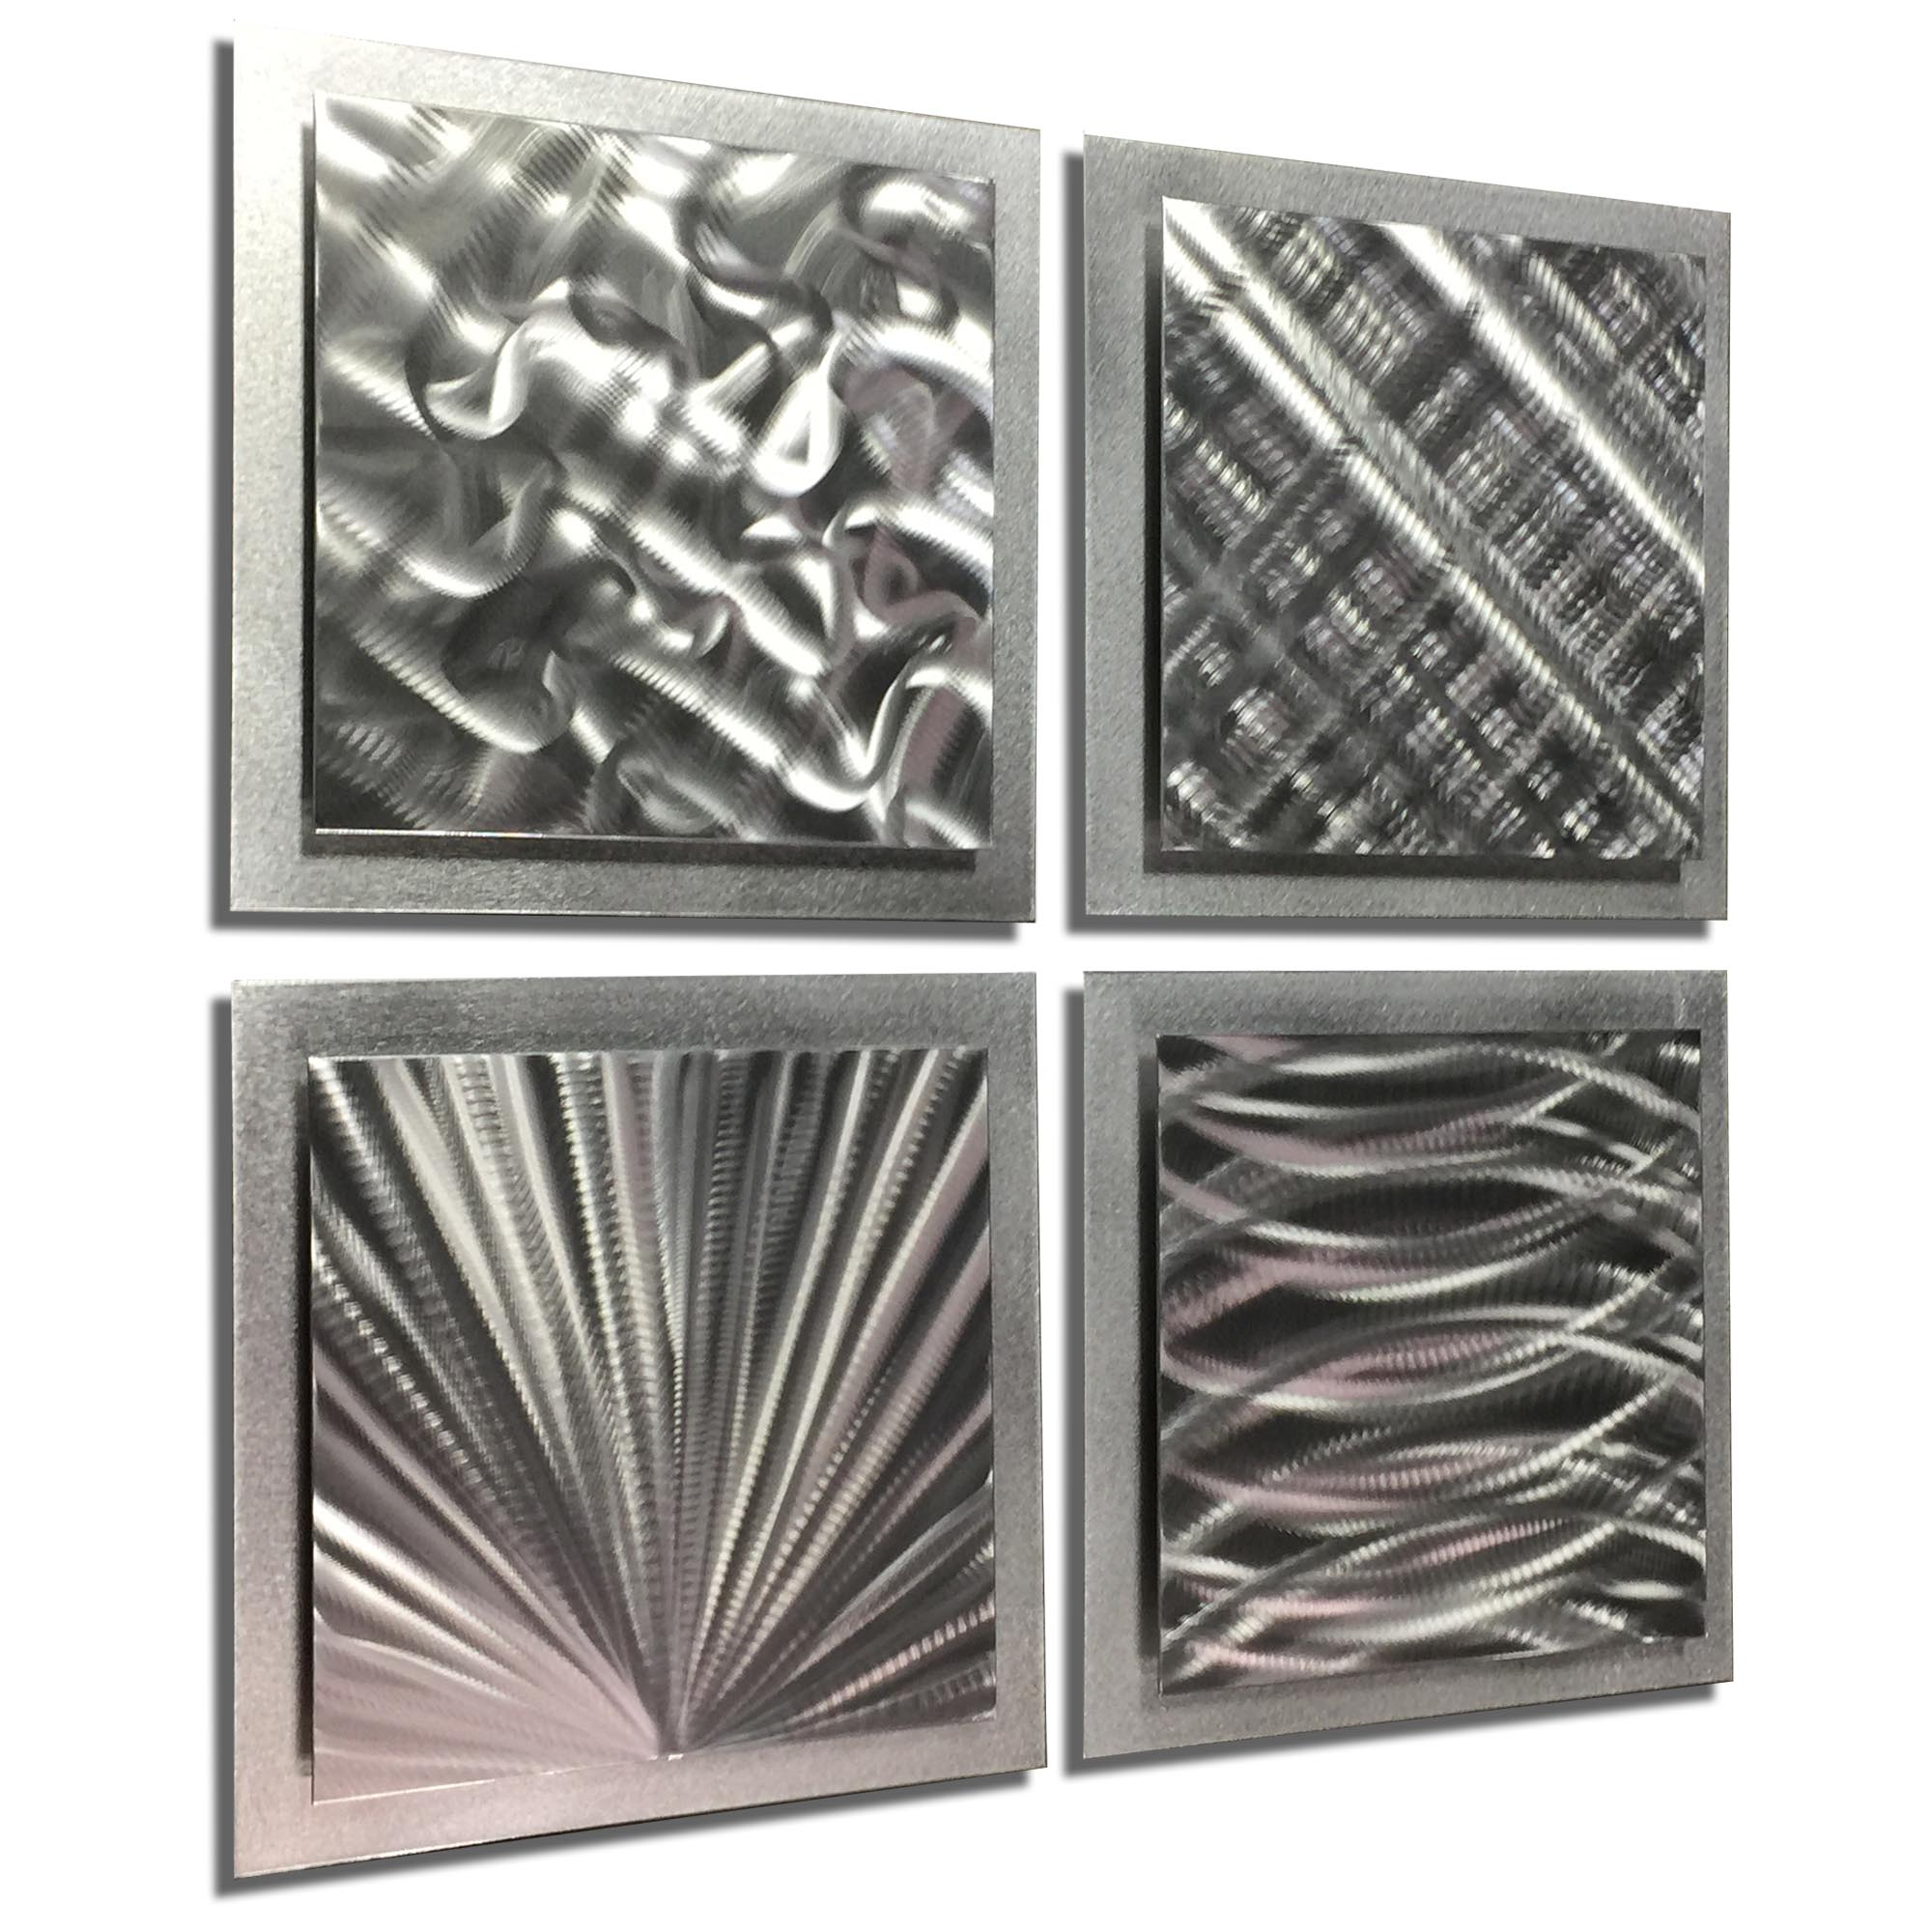 Silver Expressions 25x25in. Natural Aluminum Abstract Decor - Image 2